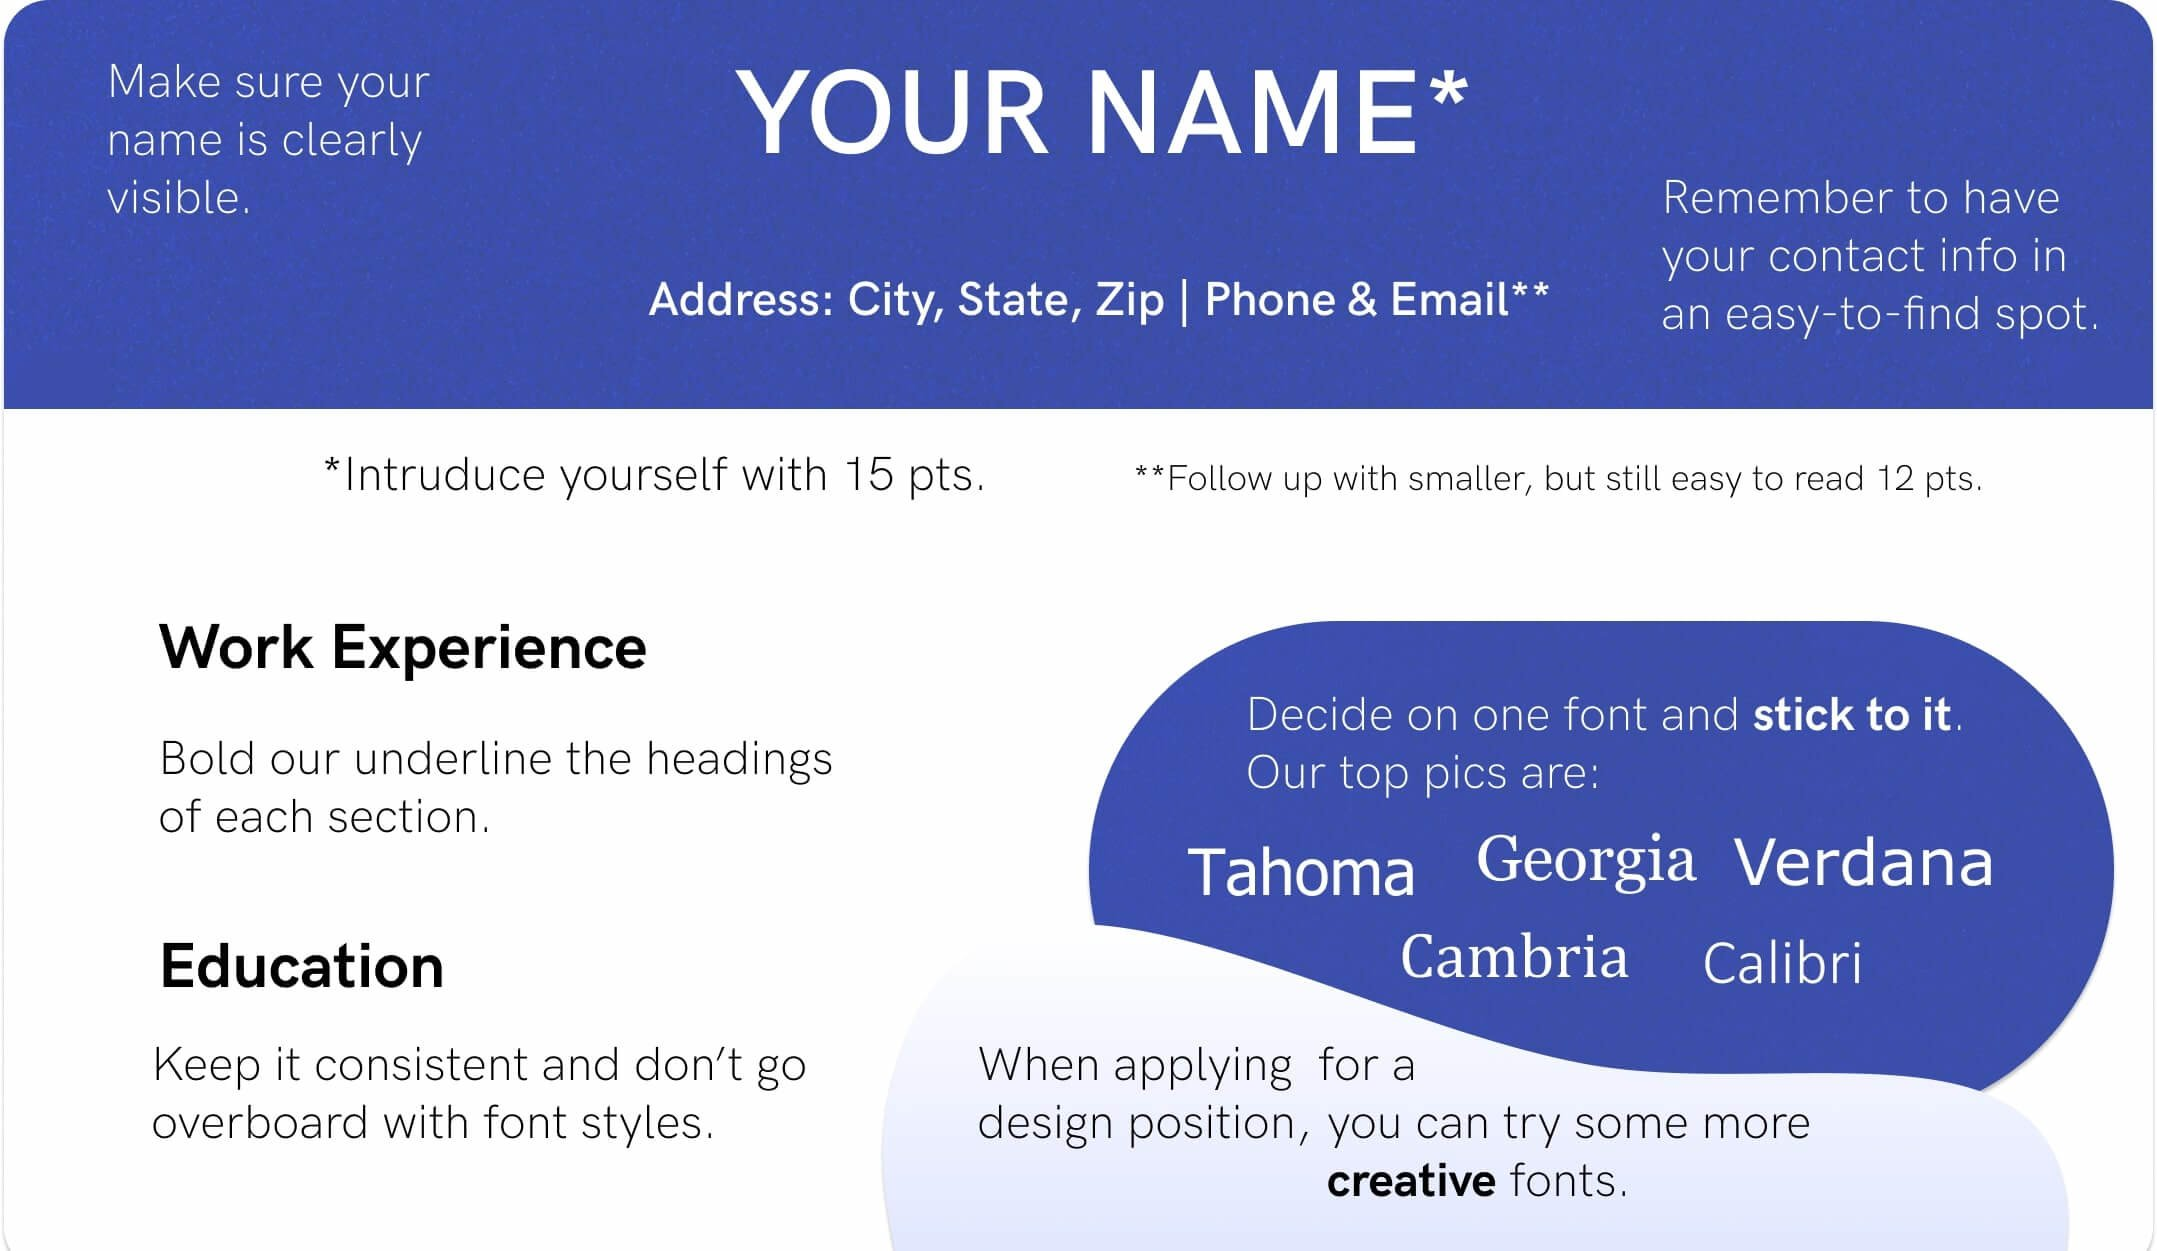 best font for resume size standard professional pairings style fonts example rite aid Resume Standard Font Style For Resume